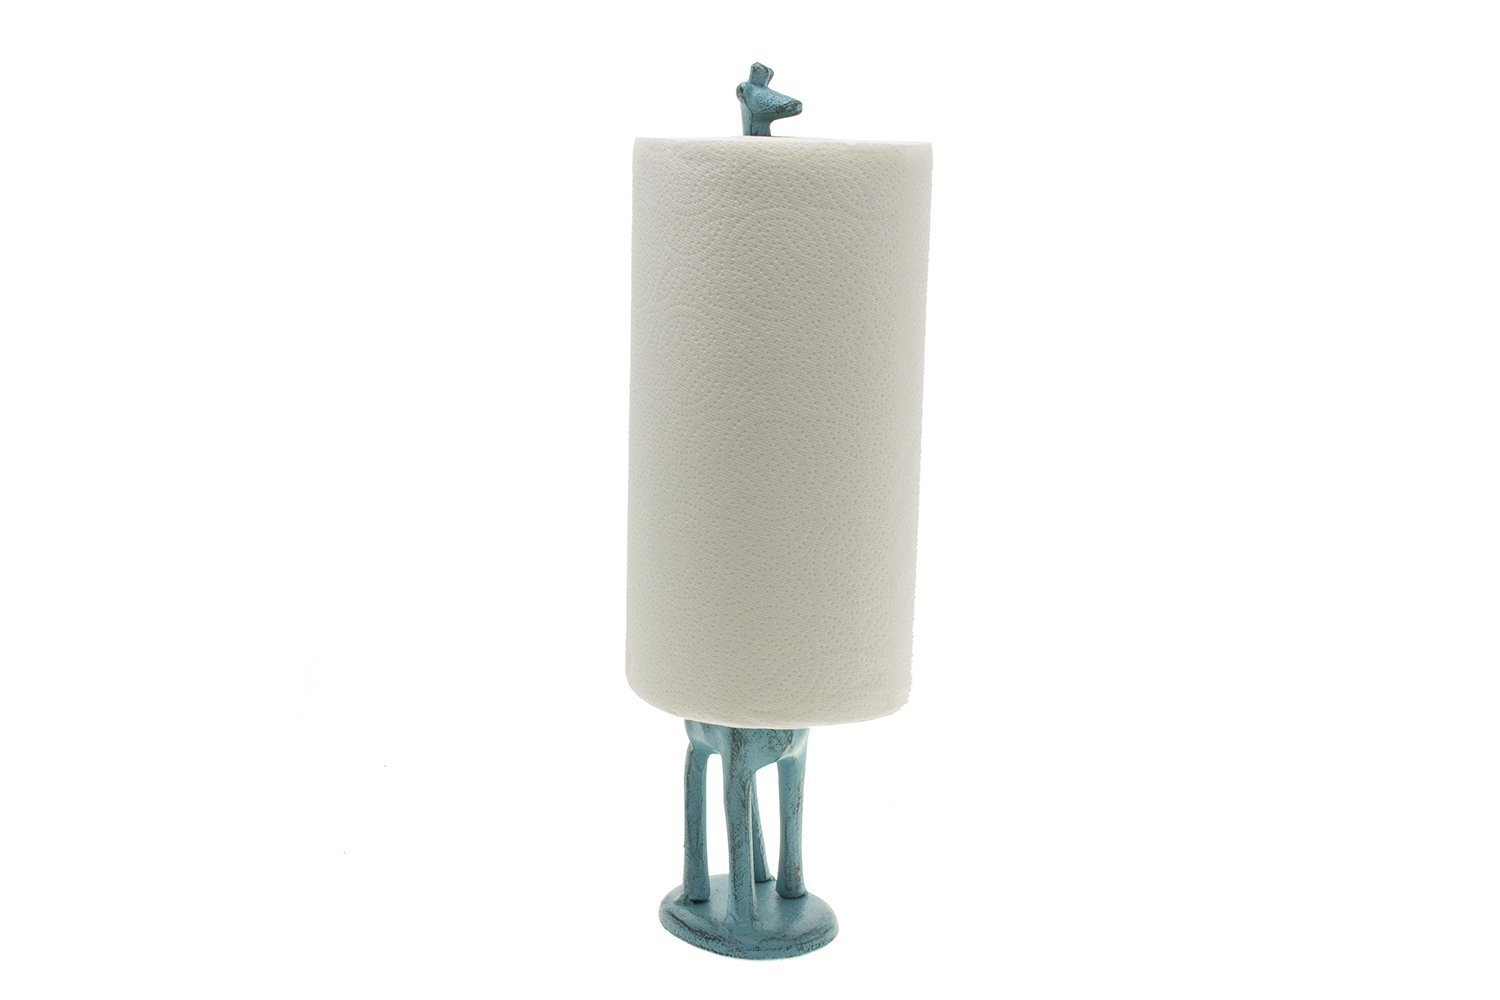 Amazon  Paper Towel Holder Or Free Standing Toilet Paper Holder Cast  Iron Giraffe Paper Holder  Bathroom Toilet Paper Holder Or Stand Up Paper  Towel